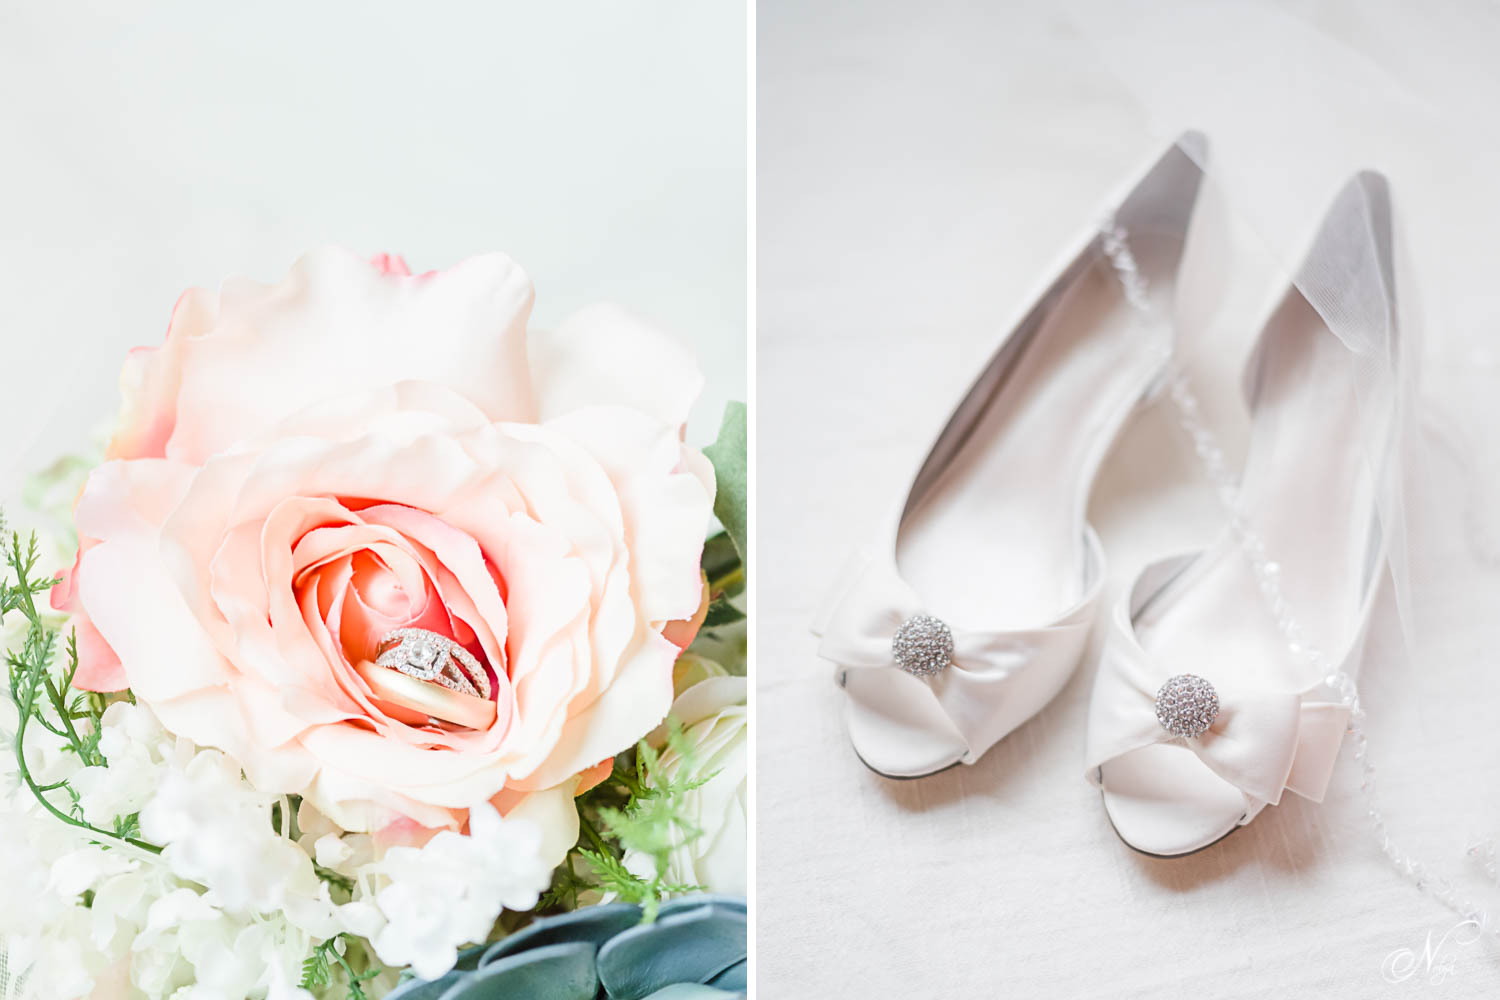 wedding ring in a pink rose and white wedding shoes with silver emblem on toe